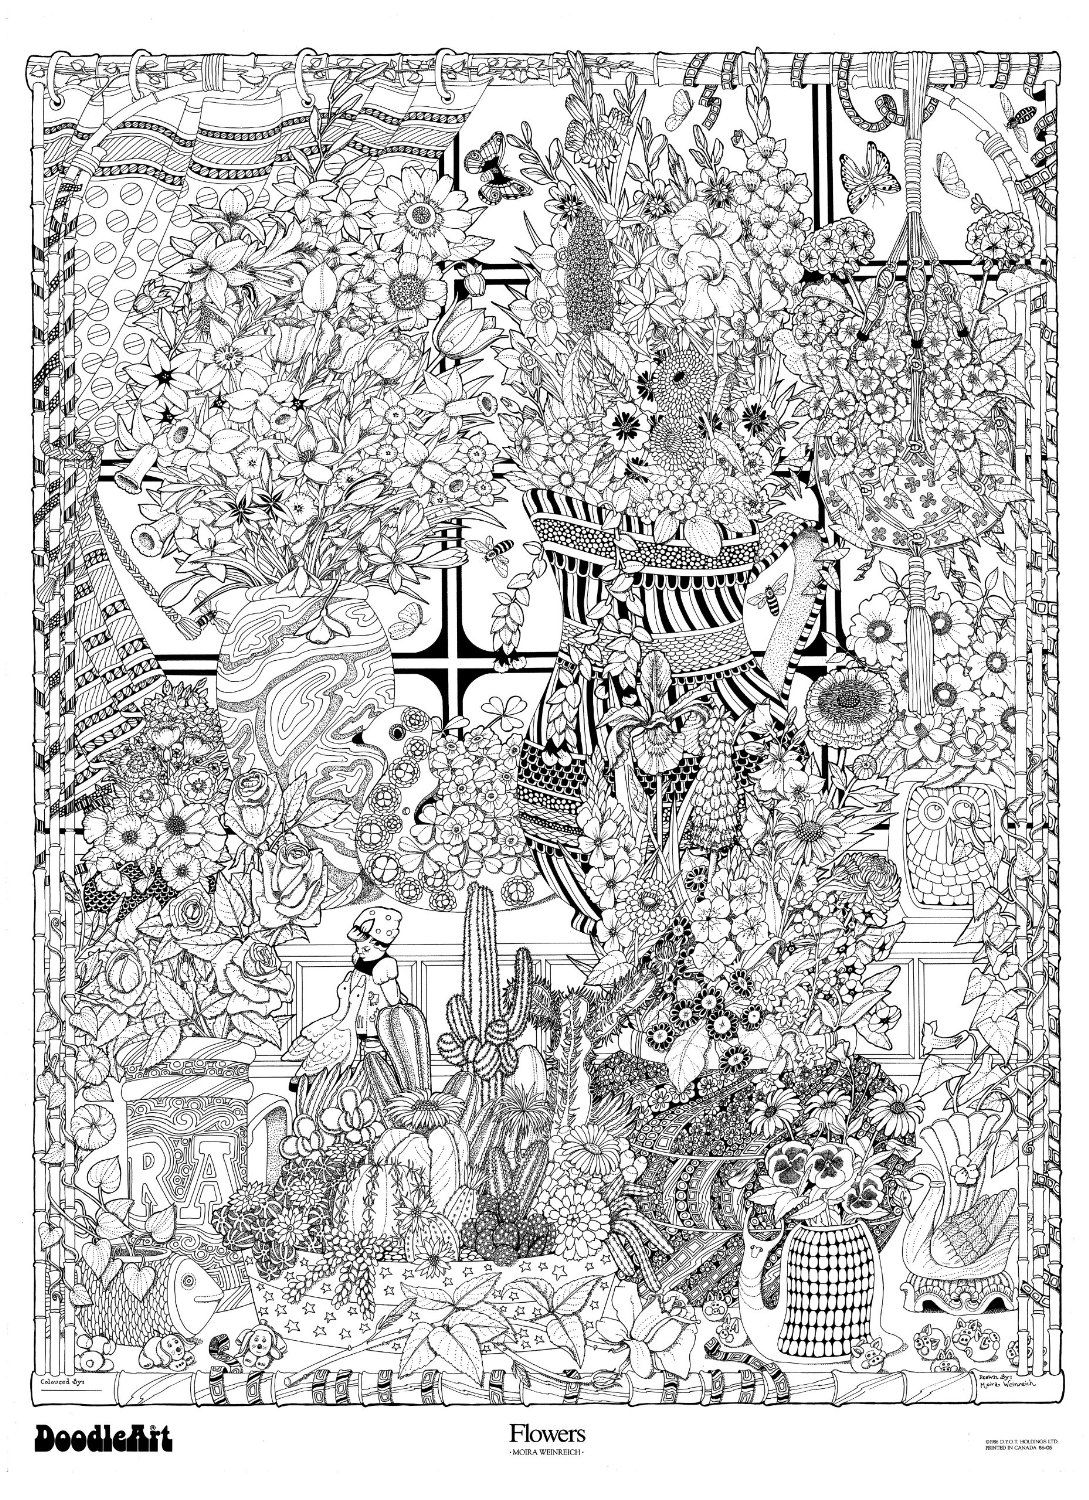 Doodle art posters to color images Giant coloring books for adults